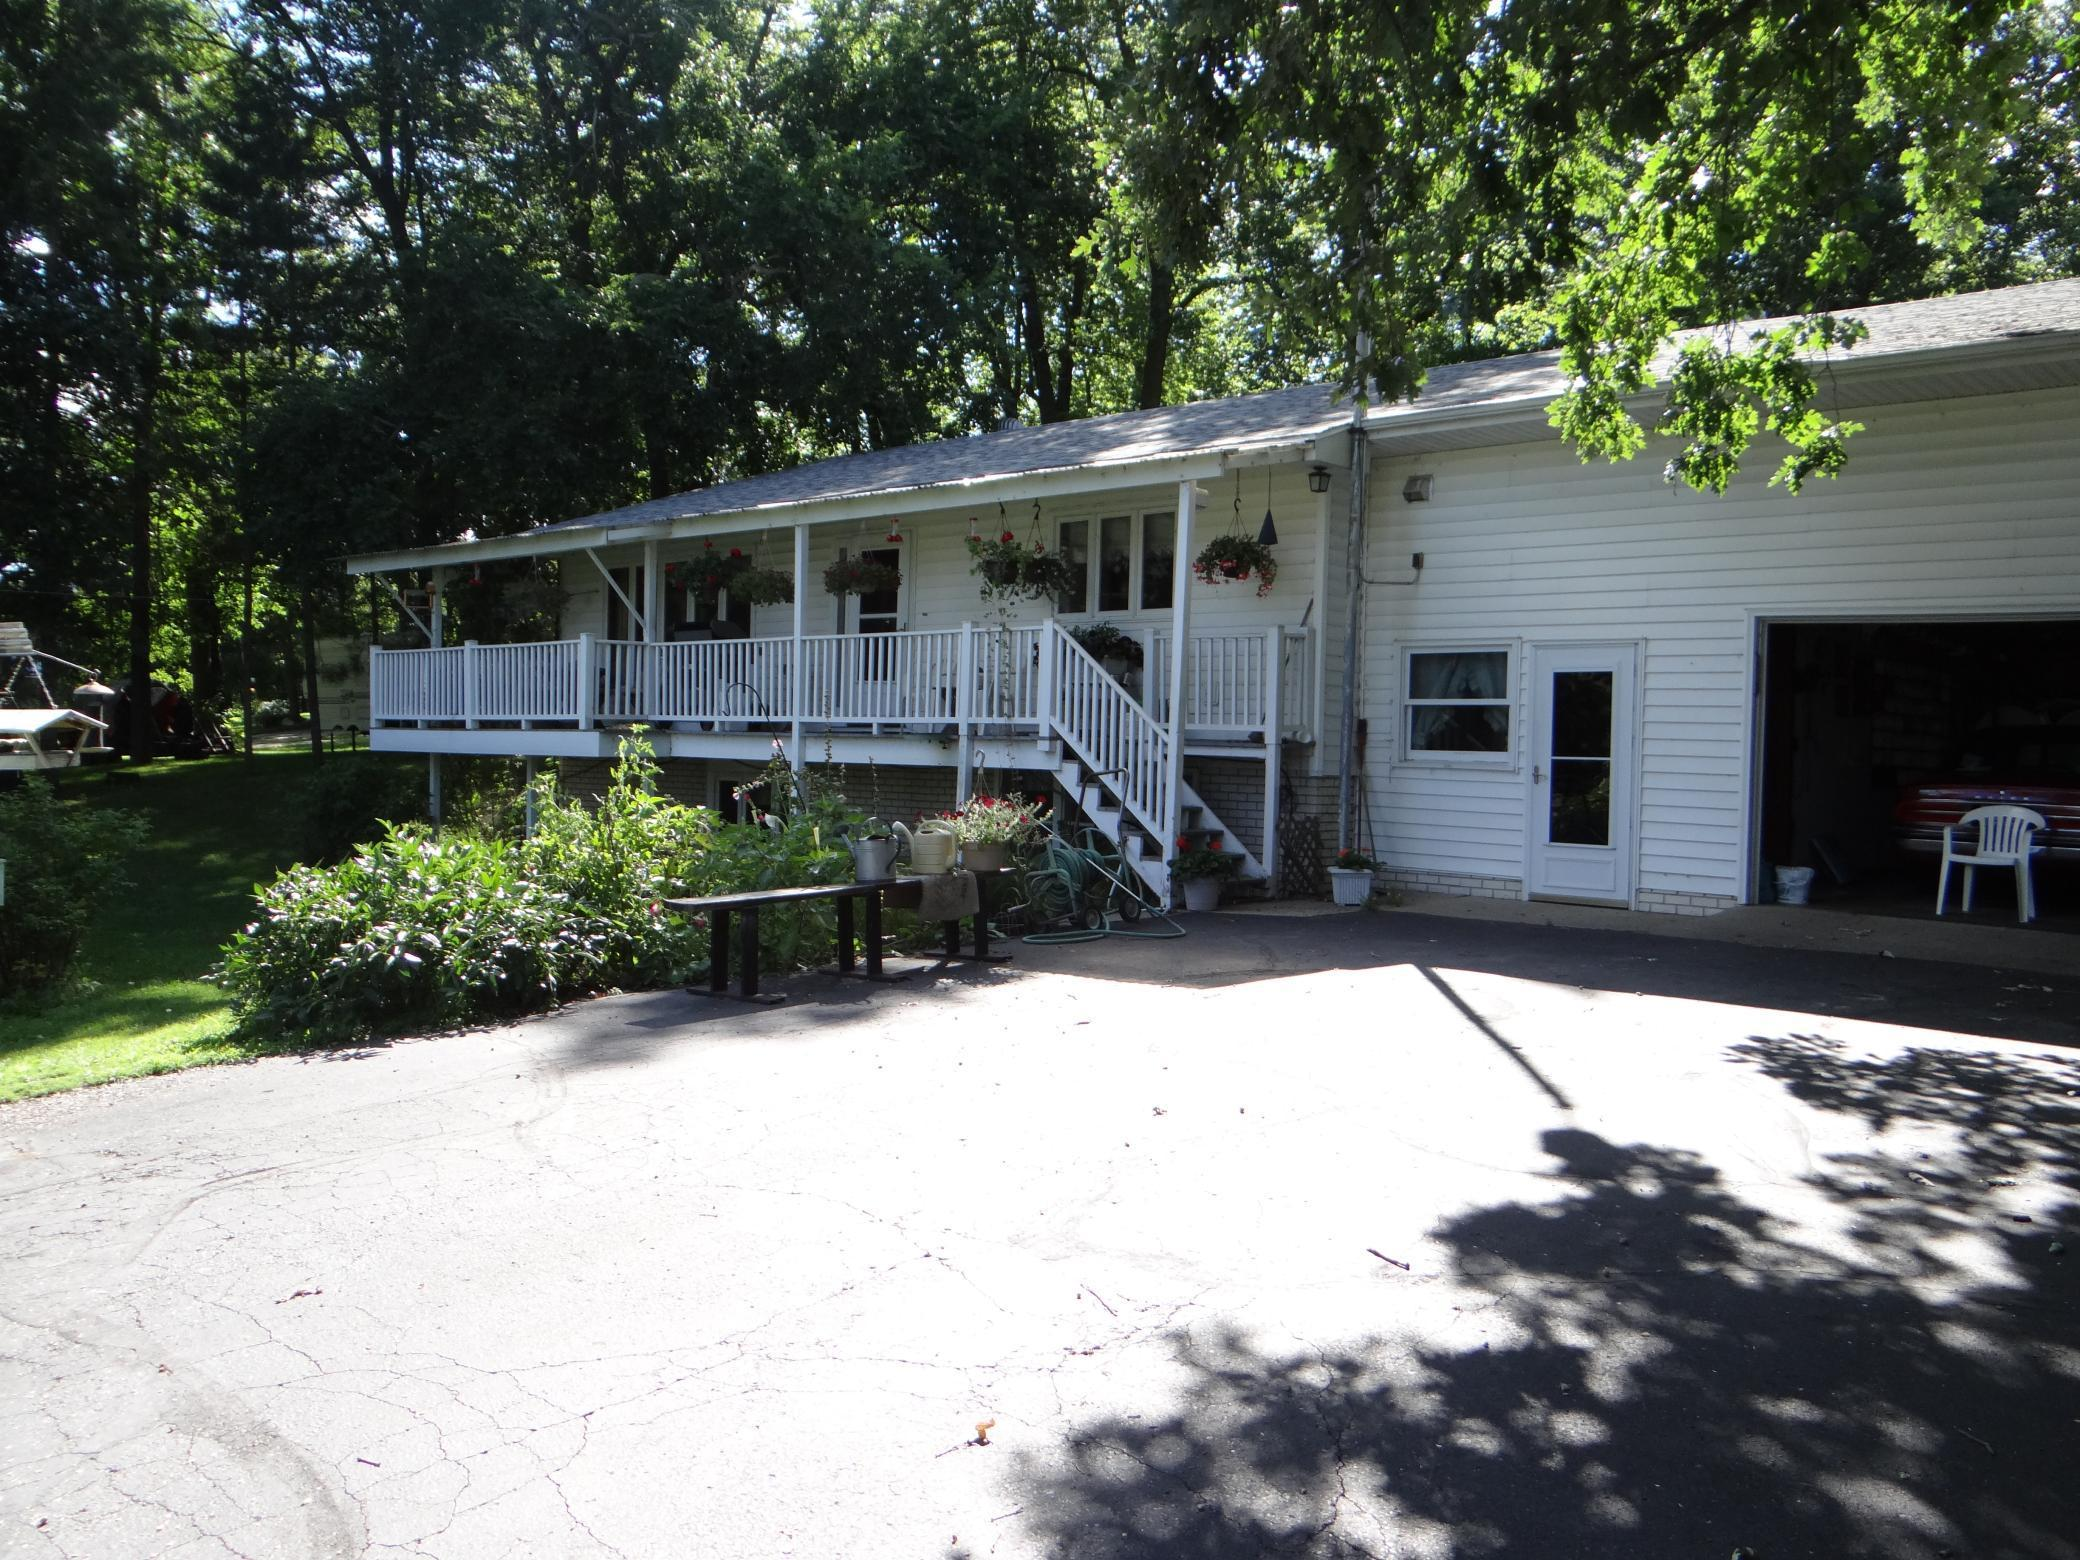 Property is tucked back off the street on the back side of the 1.5 acres with lots of mature trees. Property is a side split level with the entry having extra living space and storage above the garage with an outside entrance to it.  Behind all Paneling on the wall there is sheet rock.